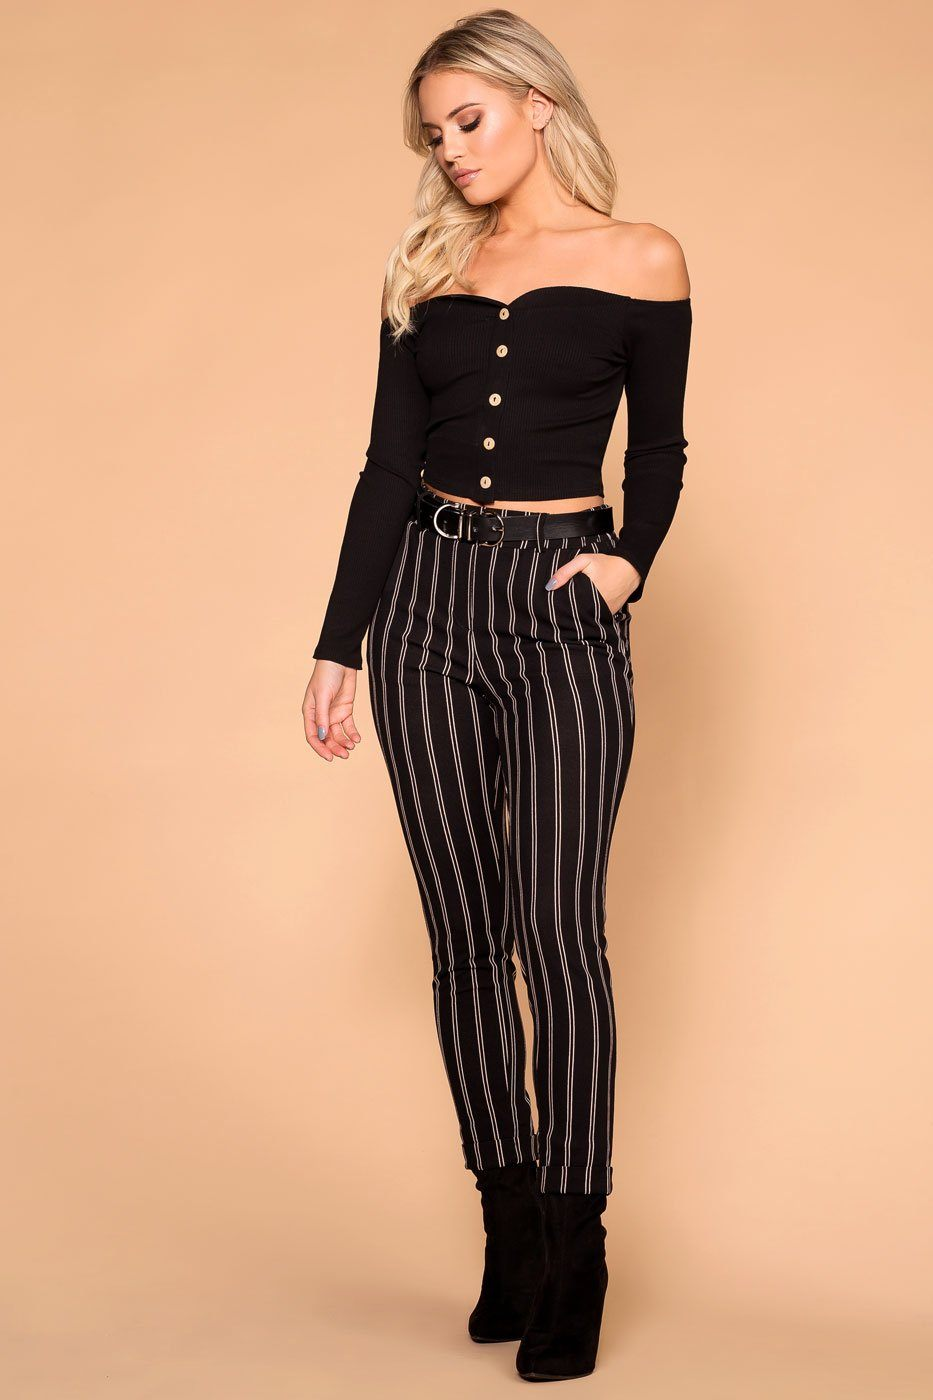 Manda Black Button Off The Shoulder Crop Top | Mezzanine